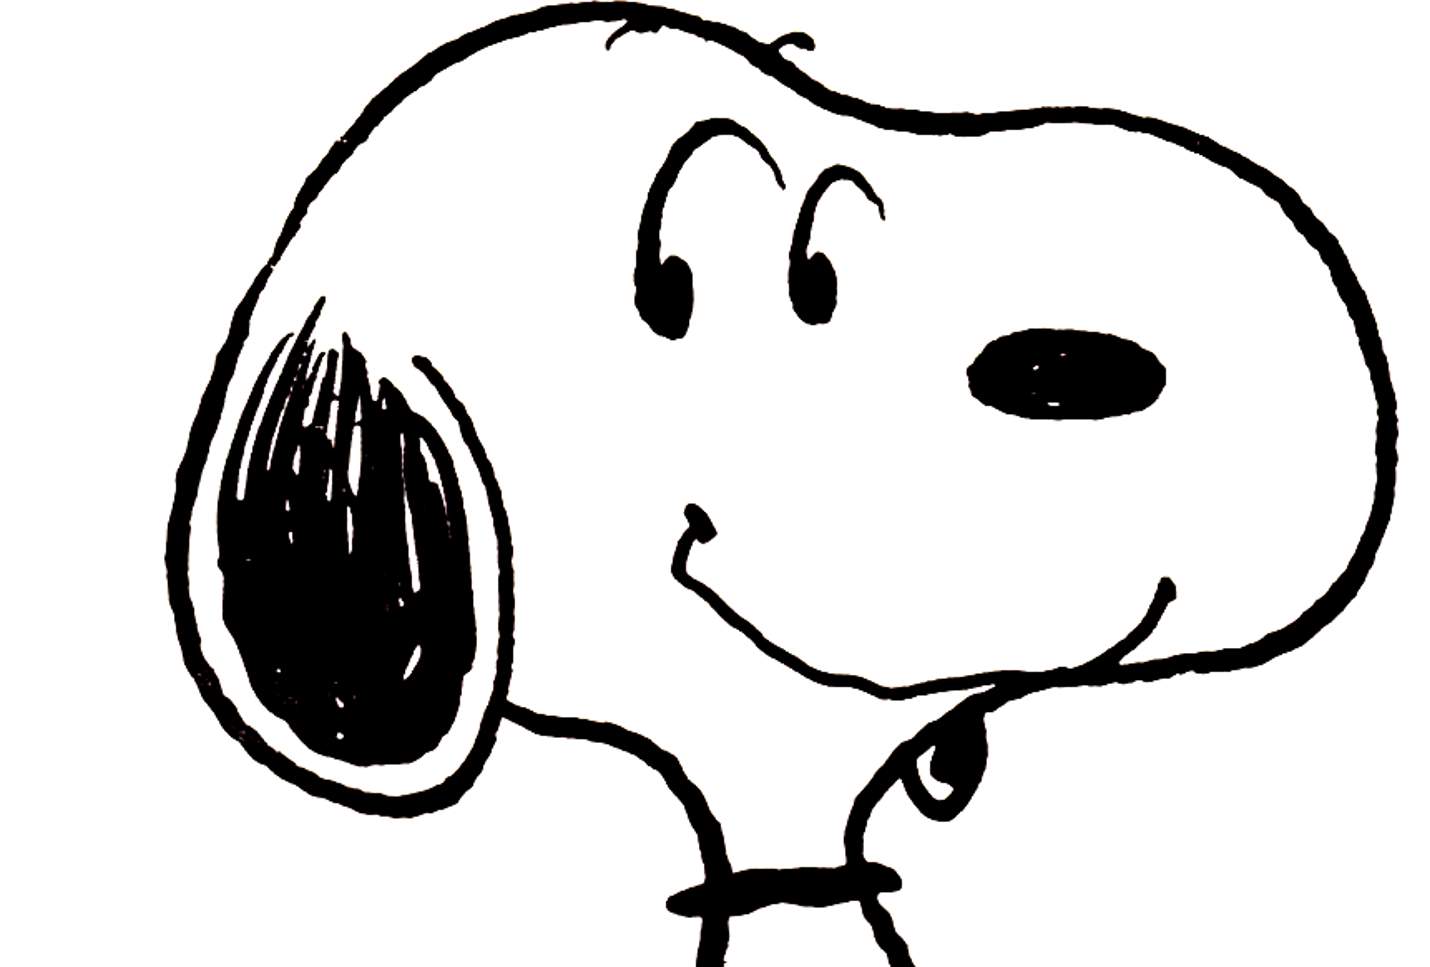 http://img2.wikia.nocookie.net/__cb20140611192009/peanuts/images/7/74/SNOOPY.png